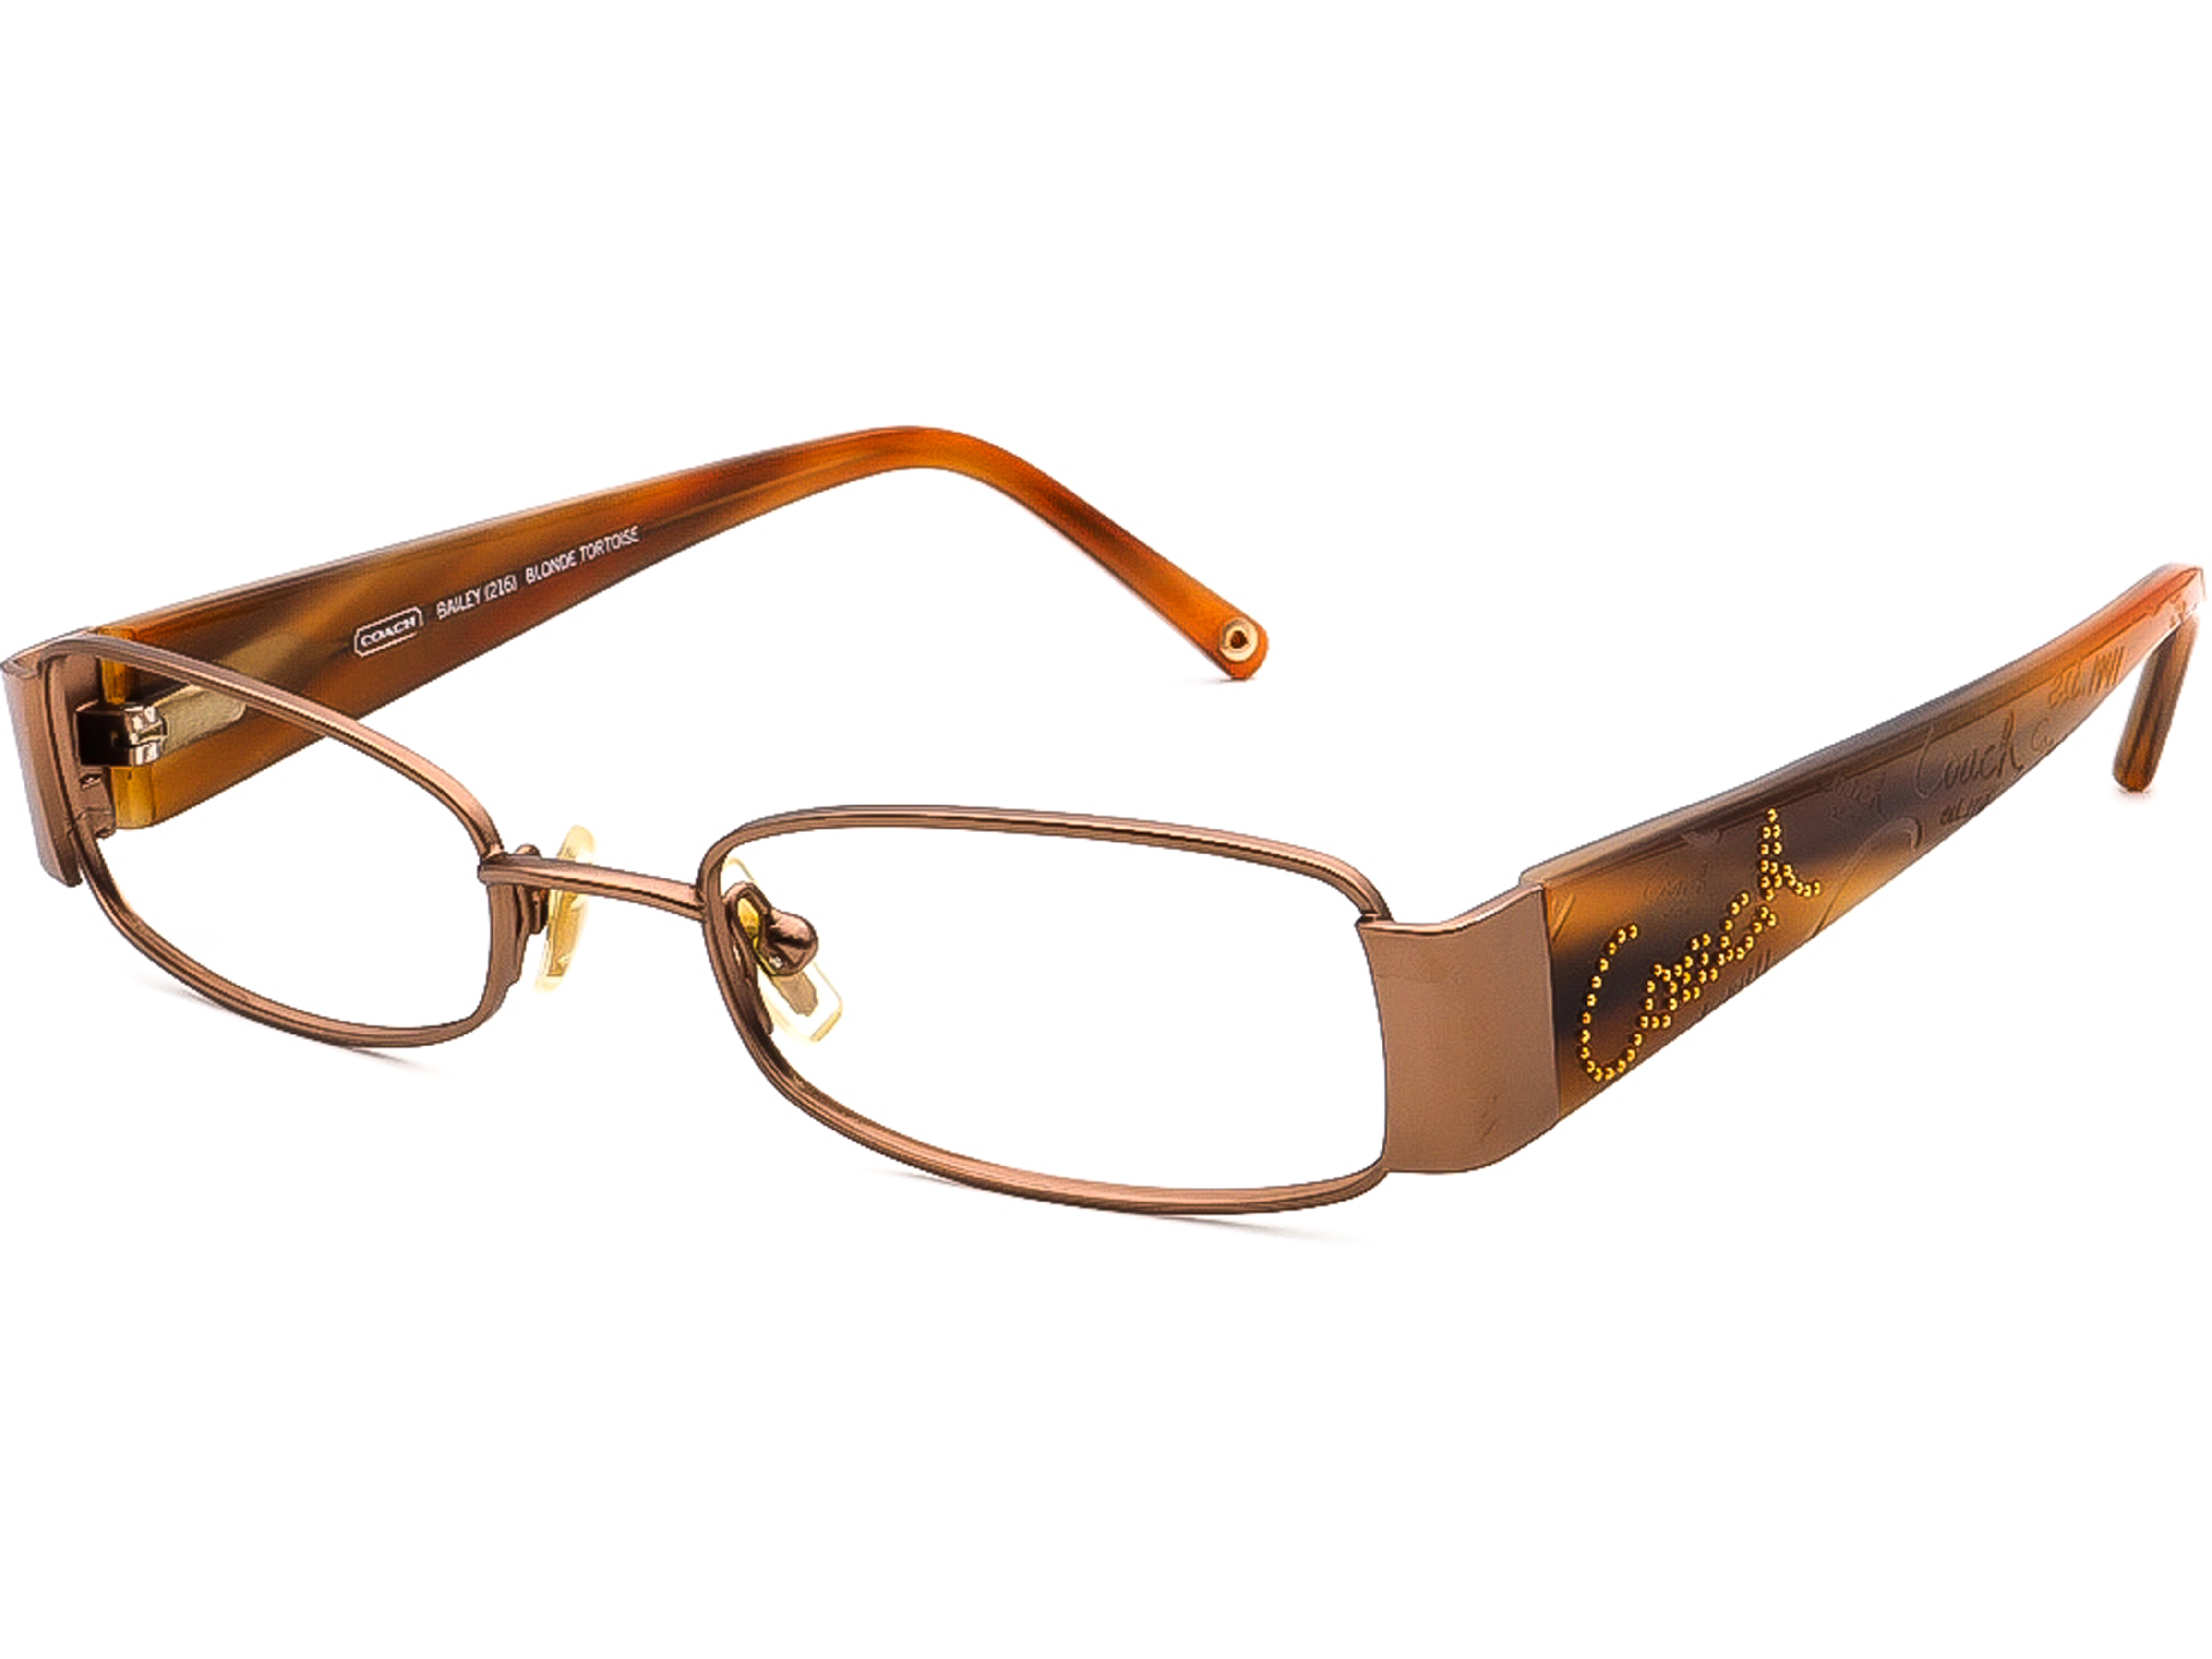 Coach Bailey 216 Blonde Tortoise Eyeglasses